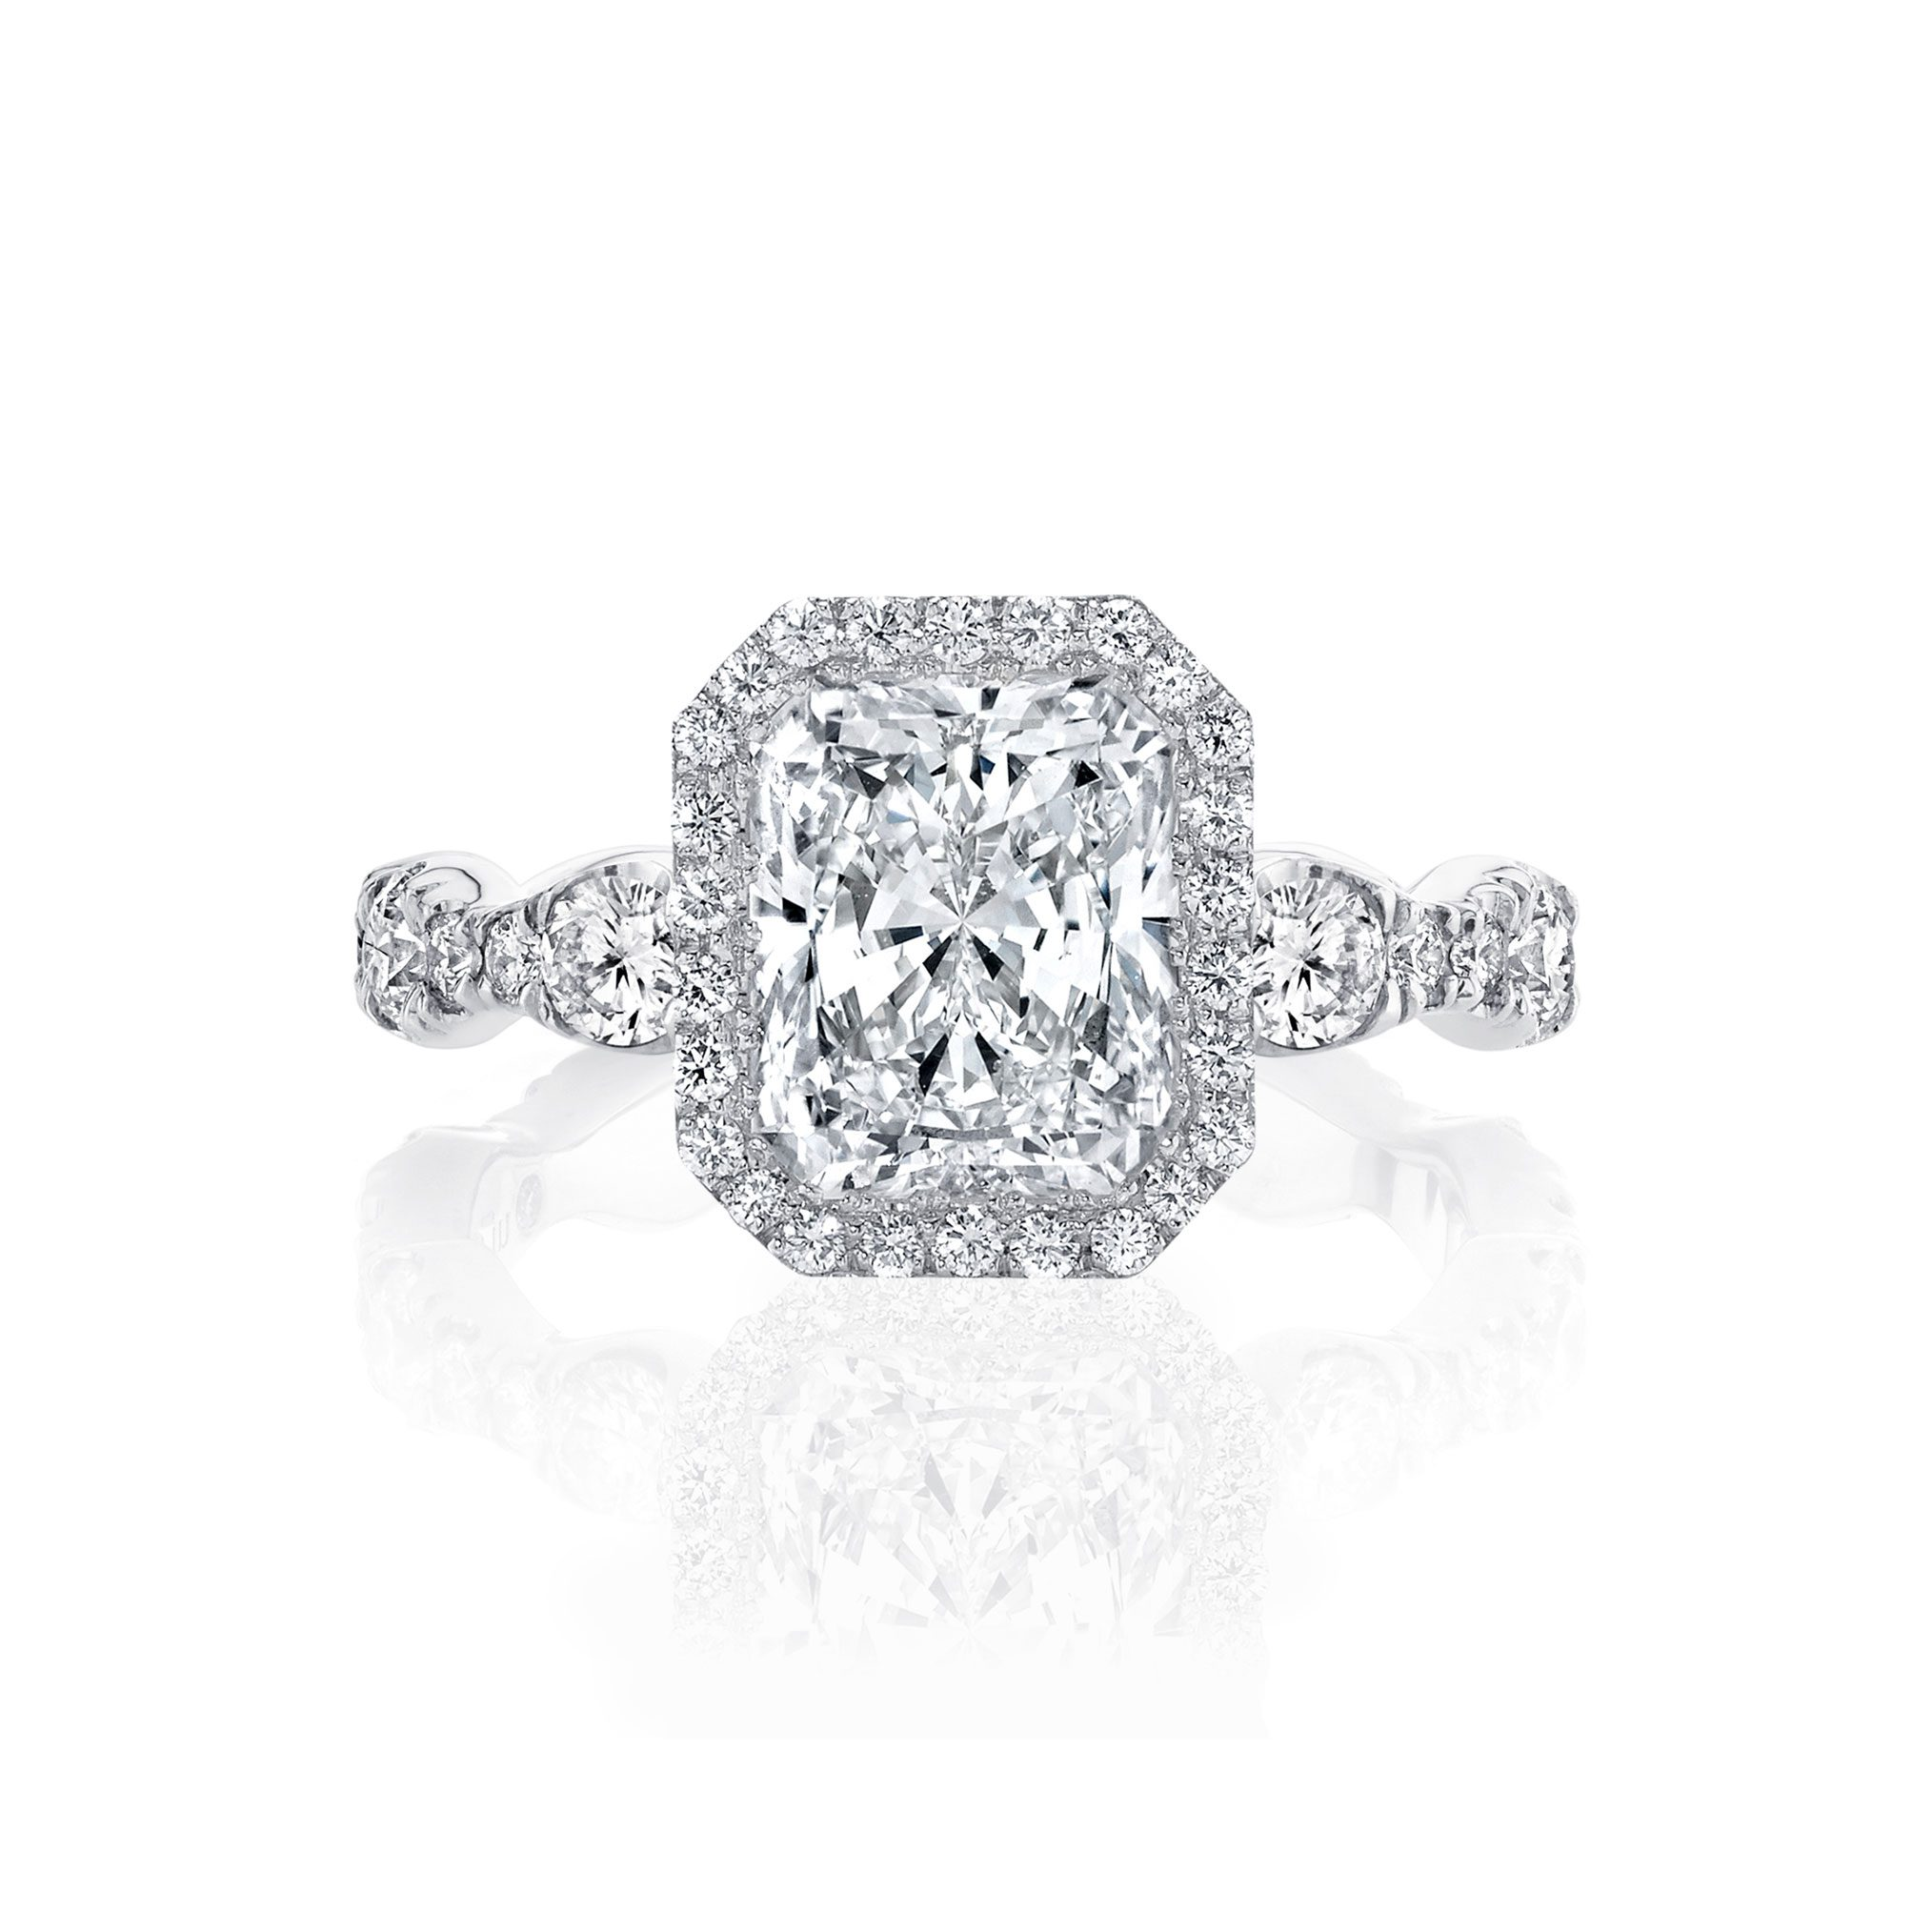 Yvonne Seamless Halo® Engagement Ring with Lab Grown Radiant Cut Diamond in 18k white gold